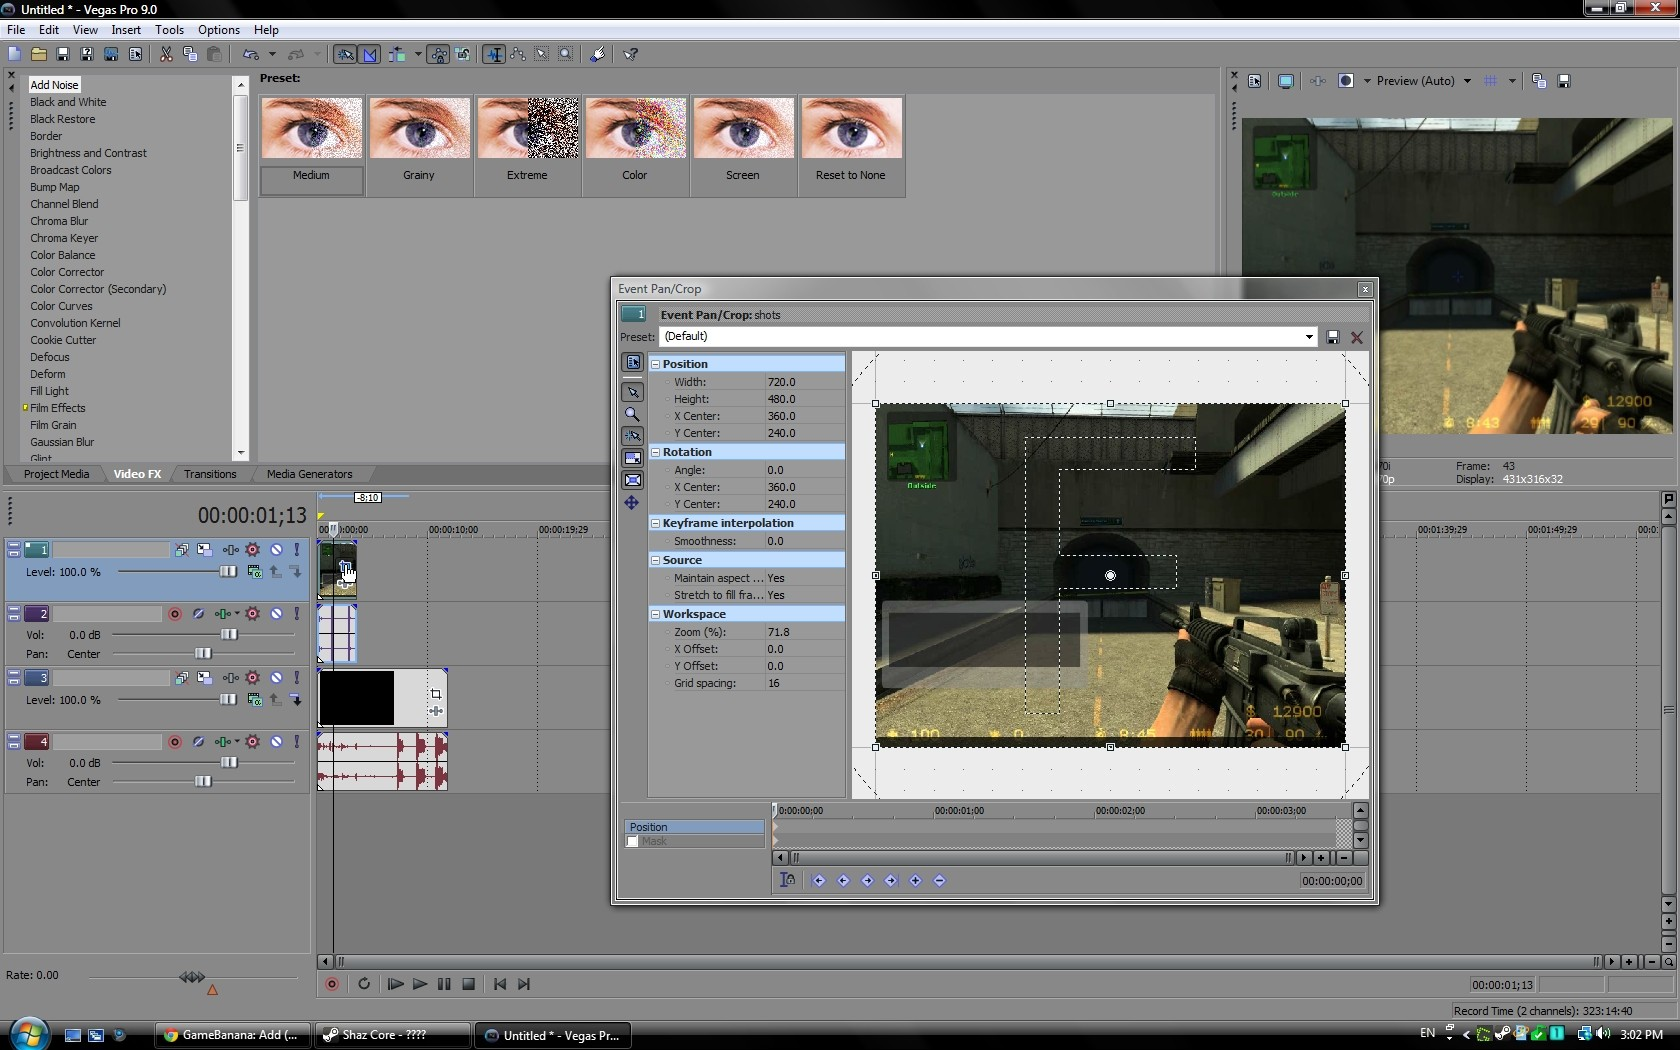 Sony Vegas: Pip (picture In Picture) Tutorial